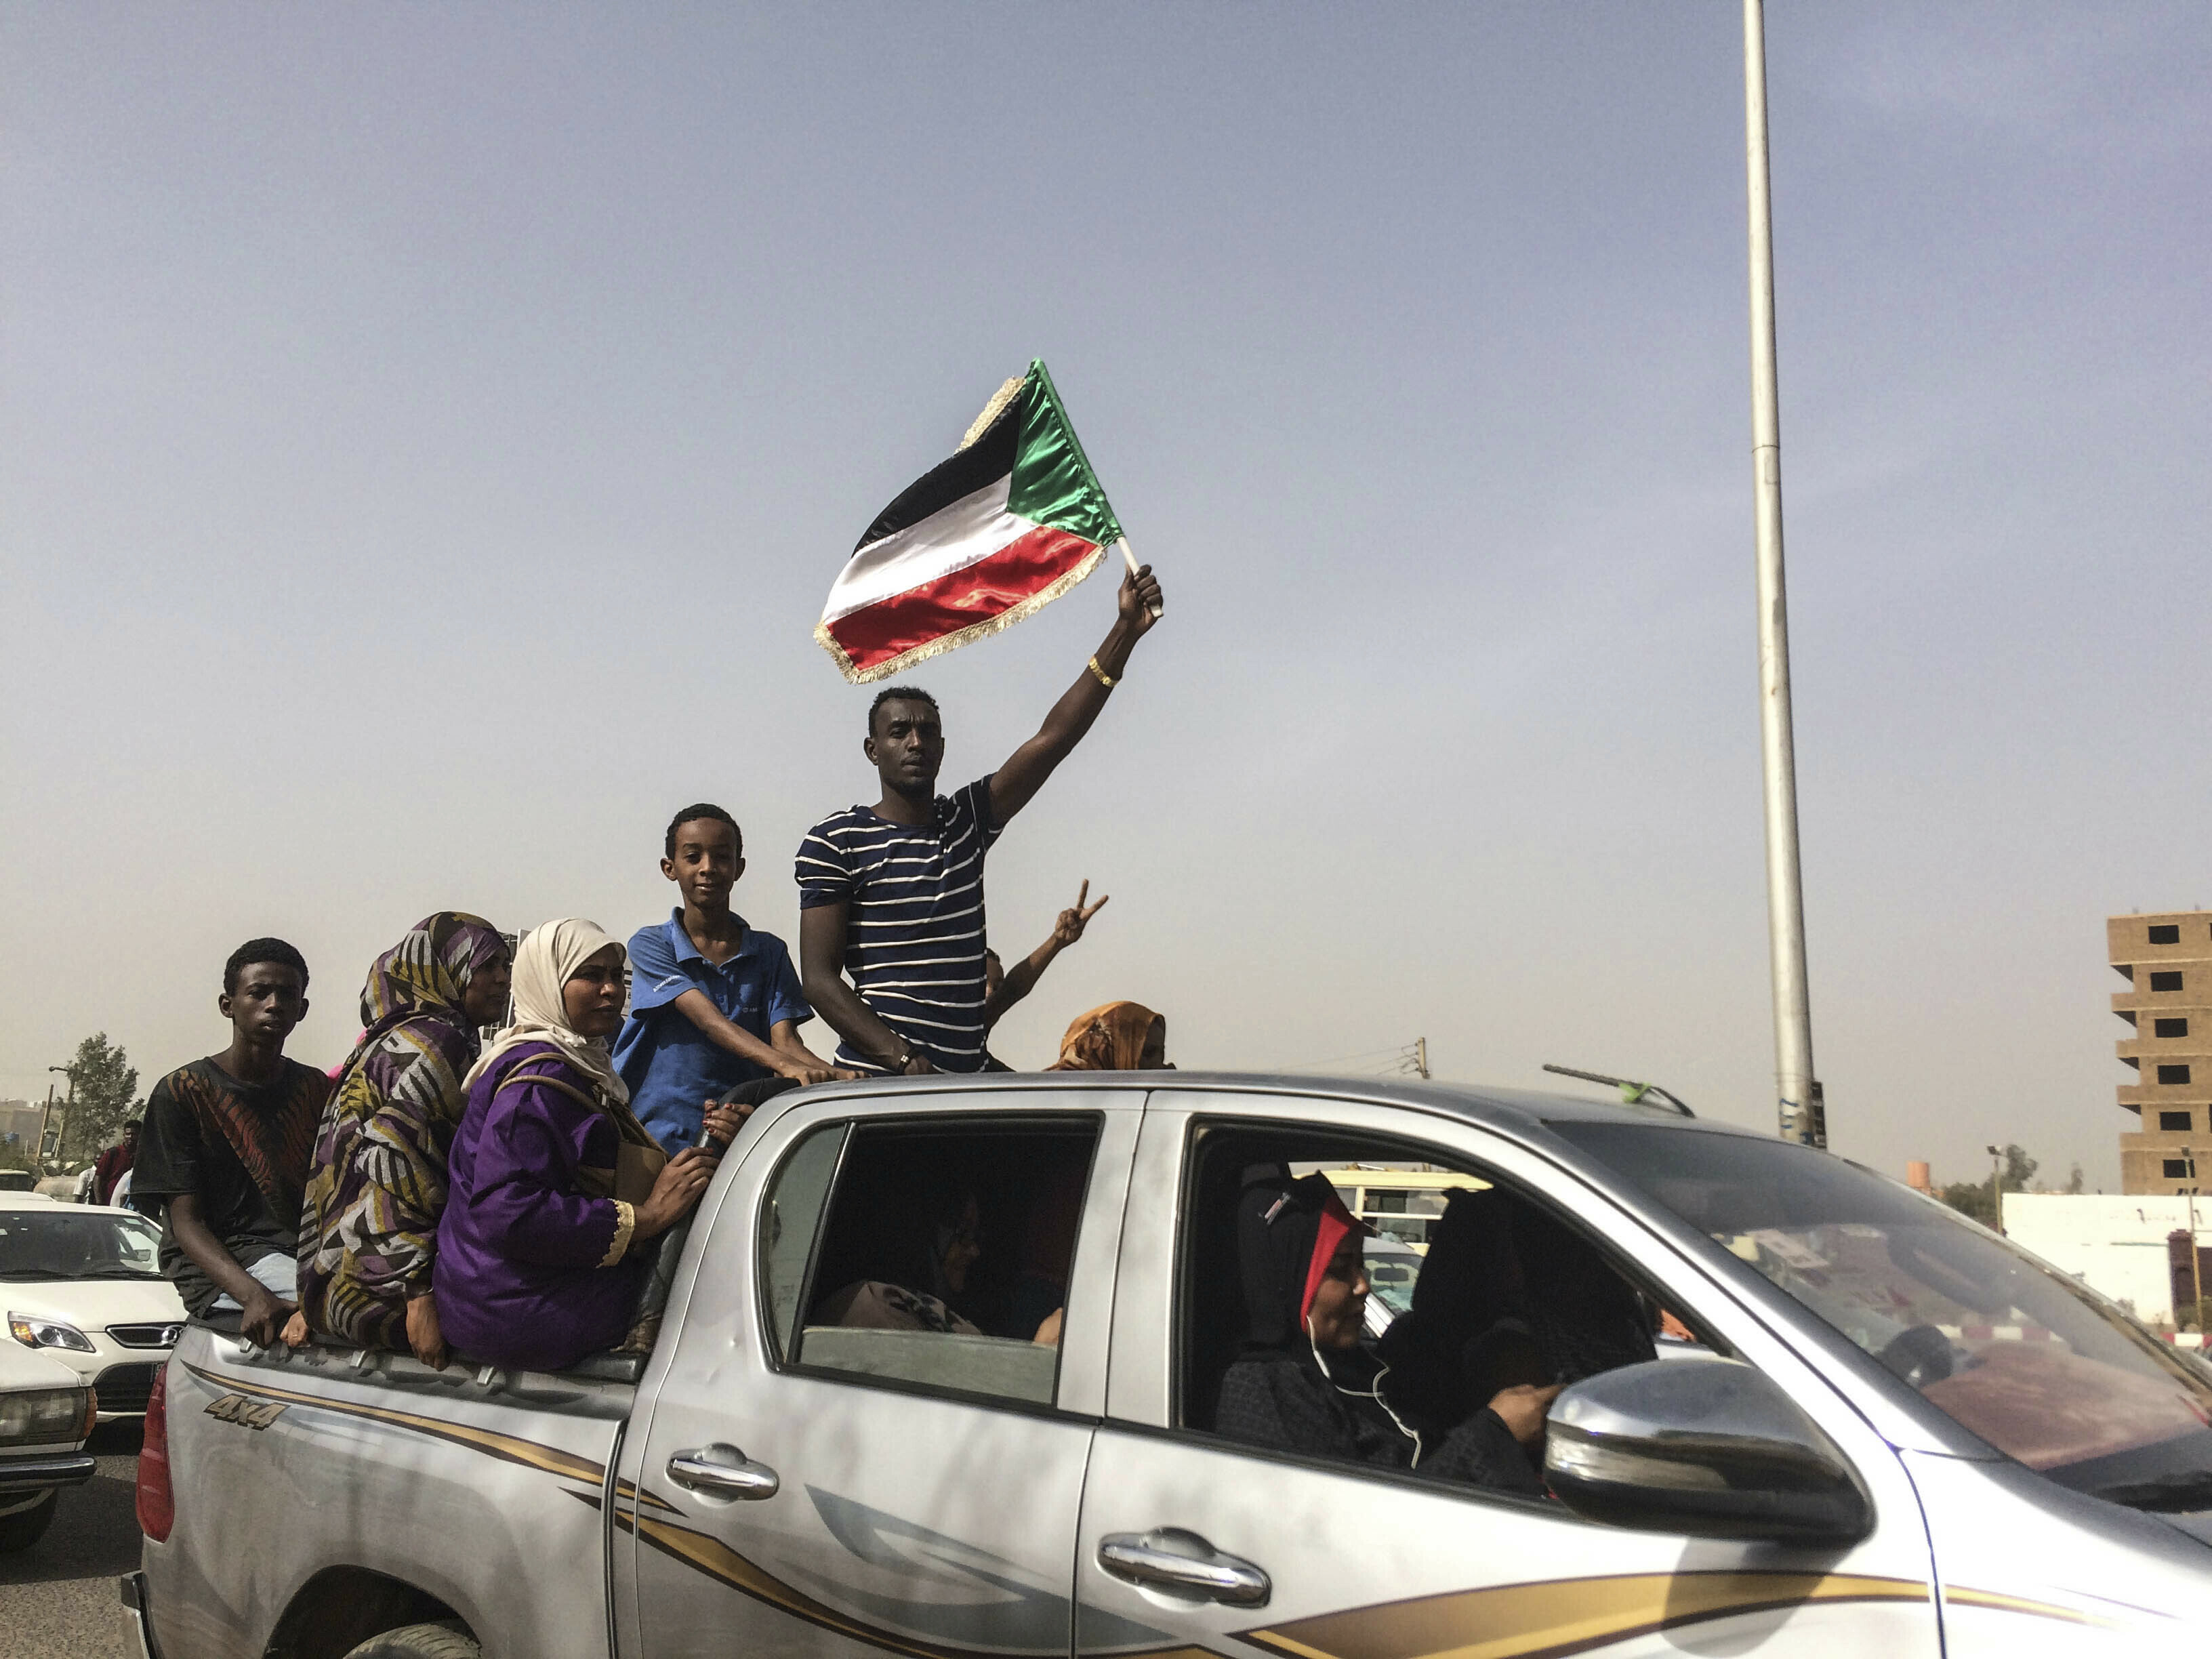 Protesters celebrate in Khartoum, Sudan